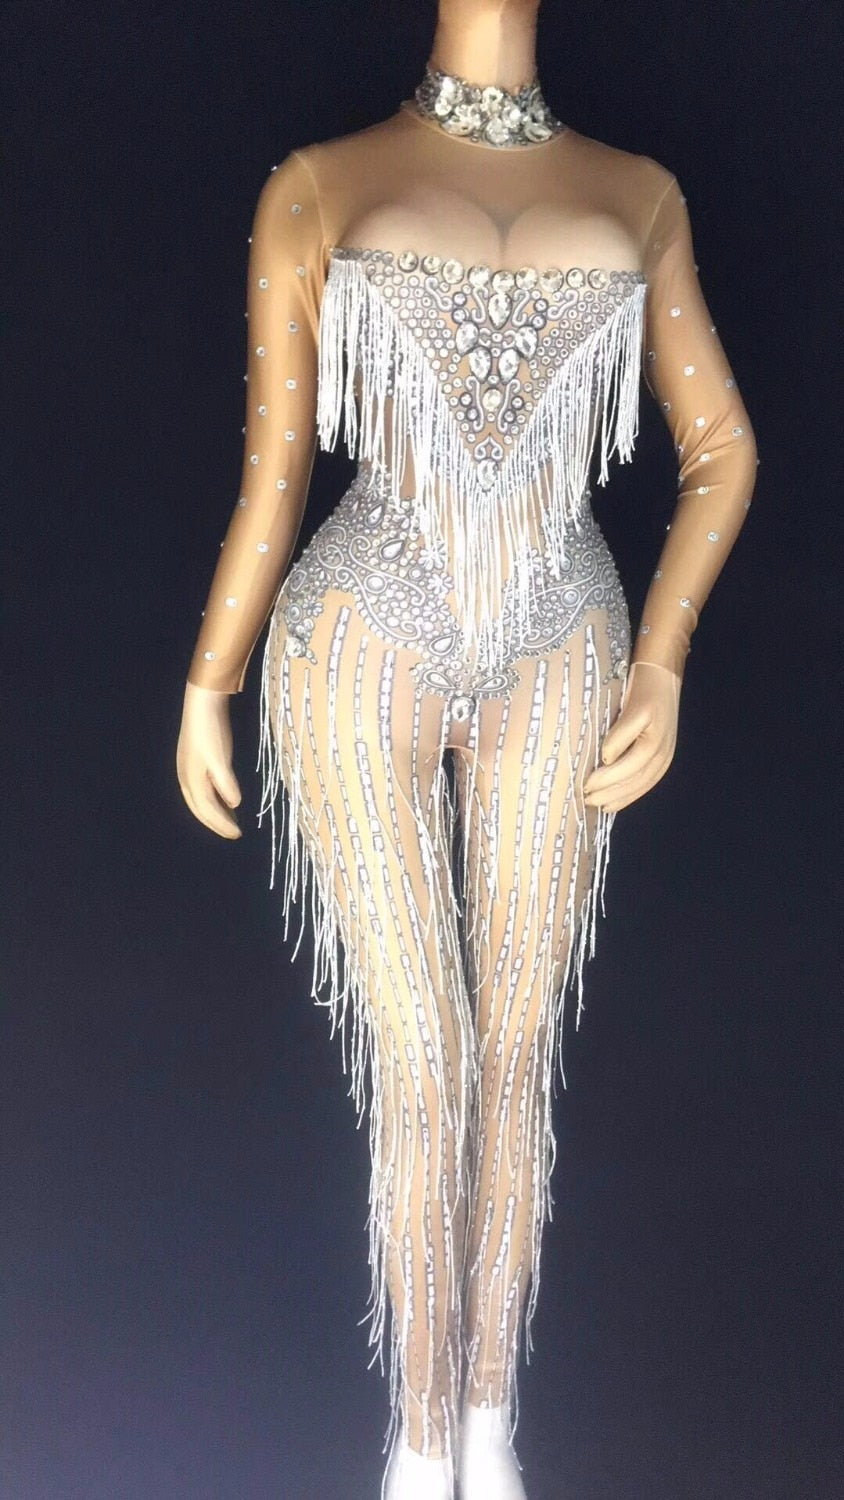 041698fcb26 Glisten Silver Rhinestones Jumpsuit Tassels Big Stones Stretch Bodysuit  Nightclub Singer Dance Party Outfit Women s Clothes